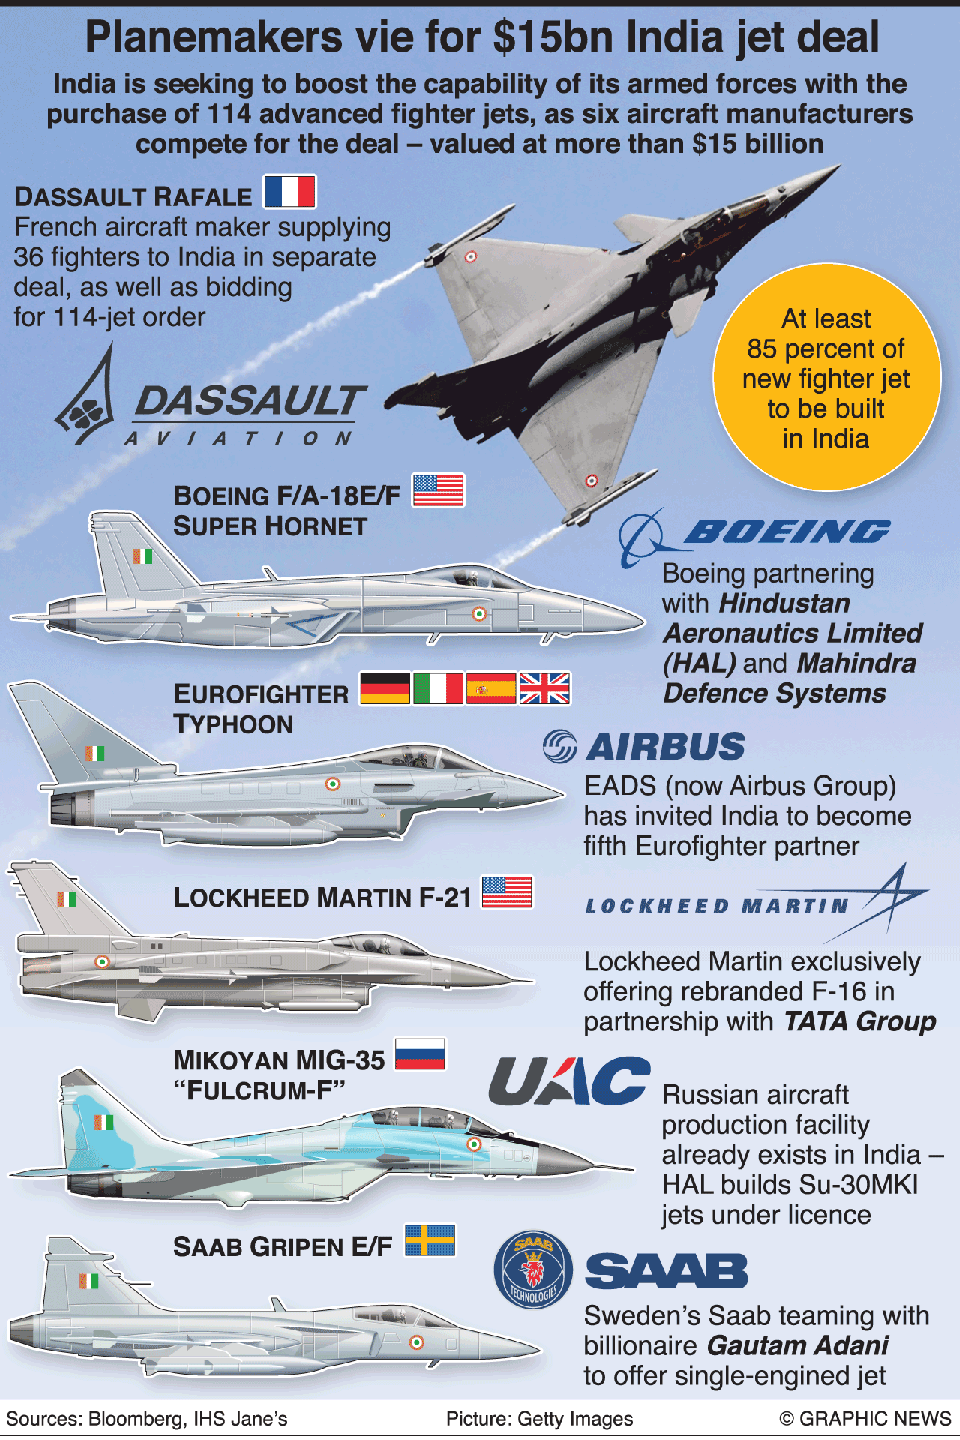 Infographics: Planemakers vie for $15bn India jet deal